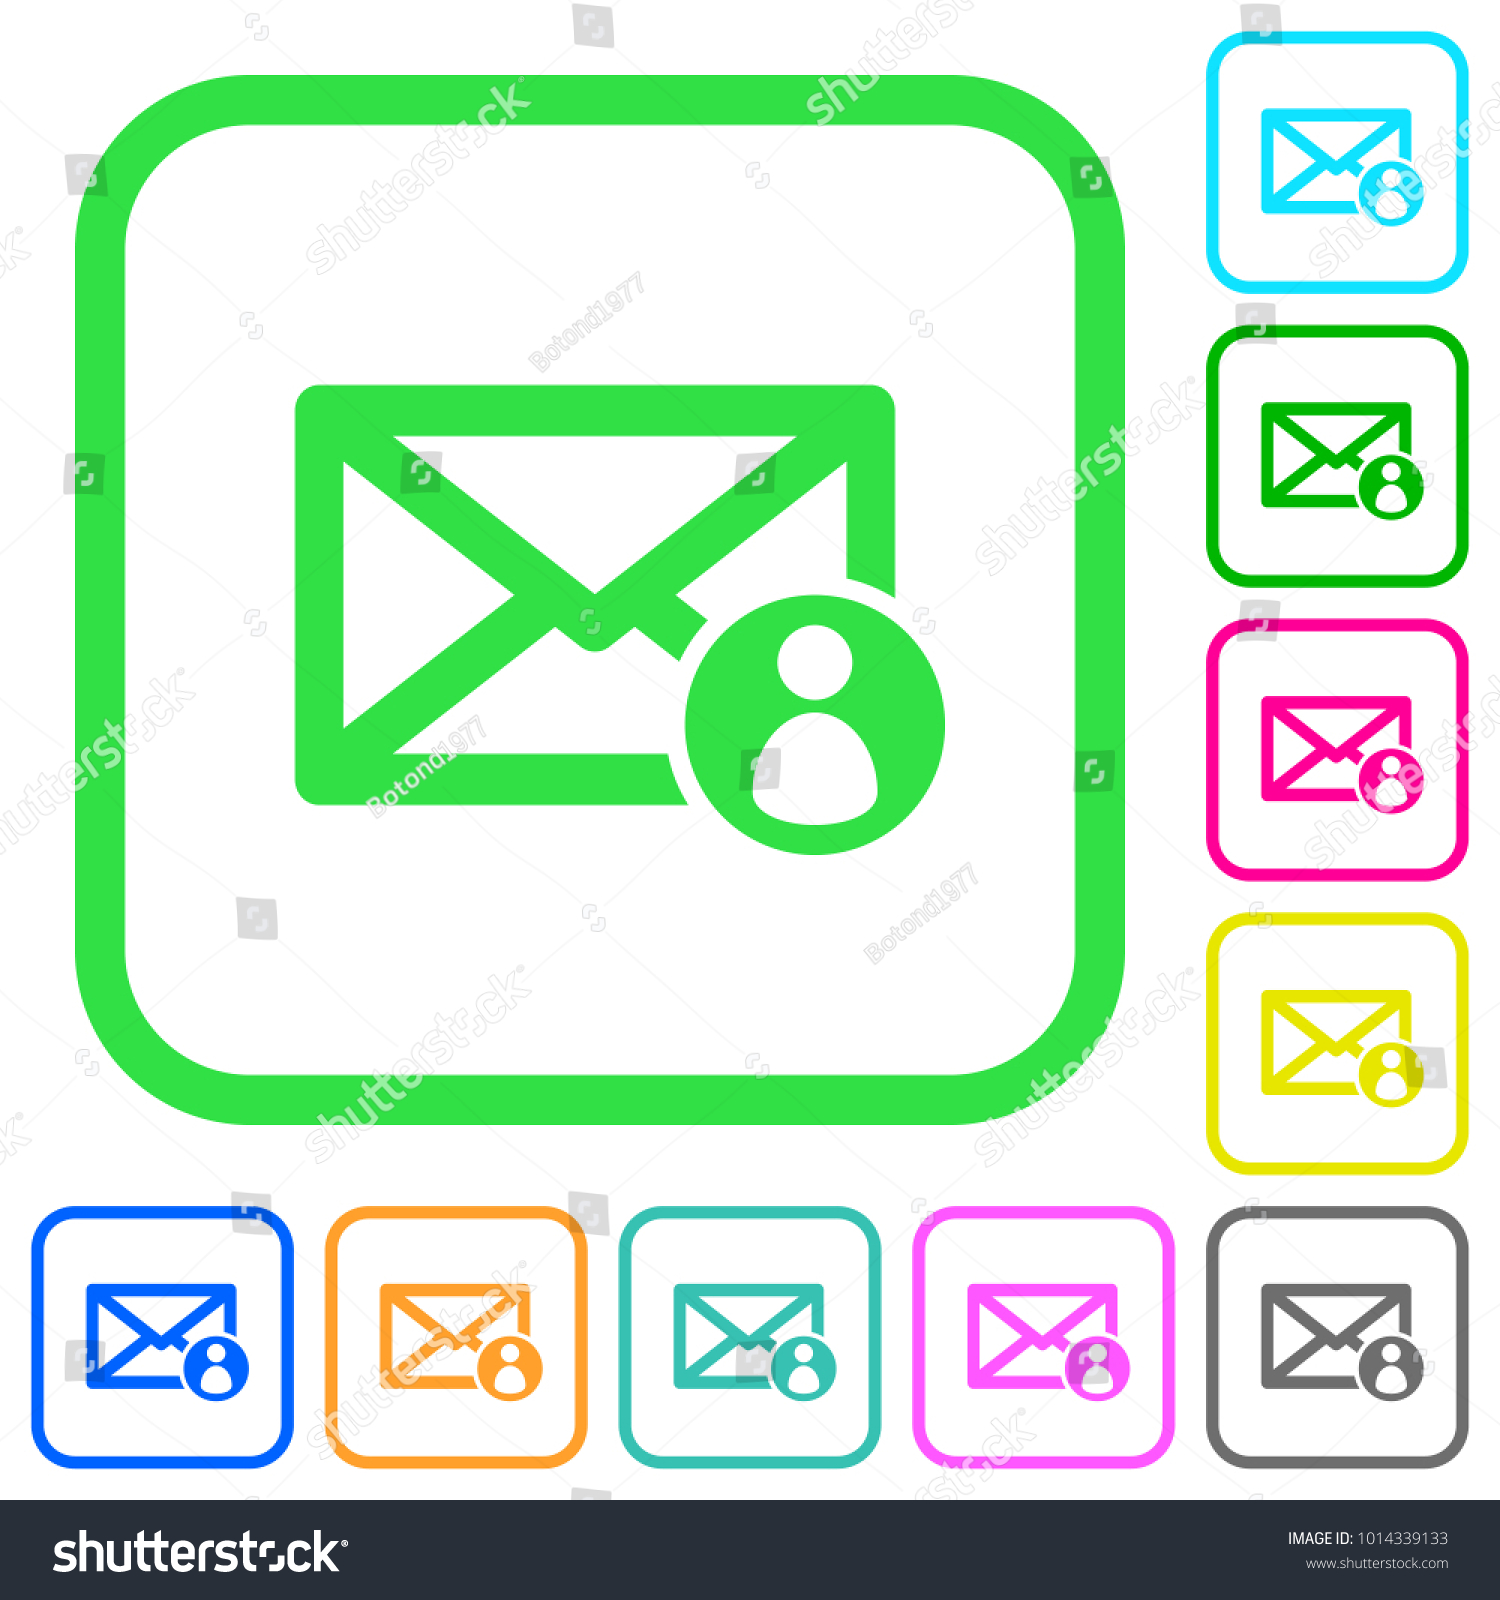 Mail Sender Vivid Colored Flat Icons Stock Vector (Royalty